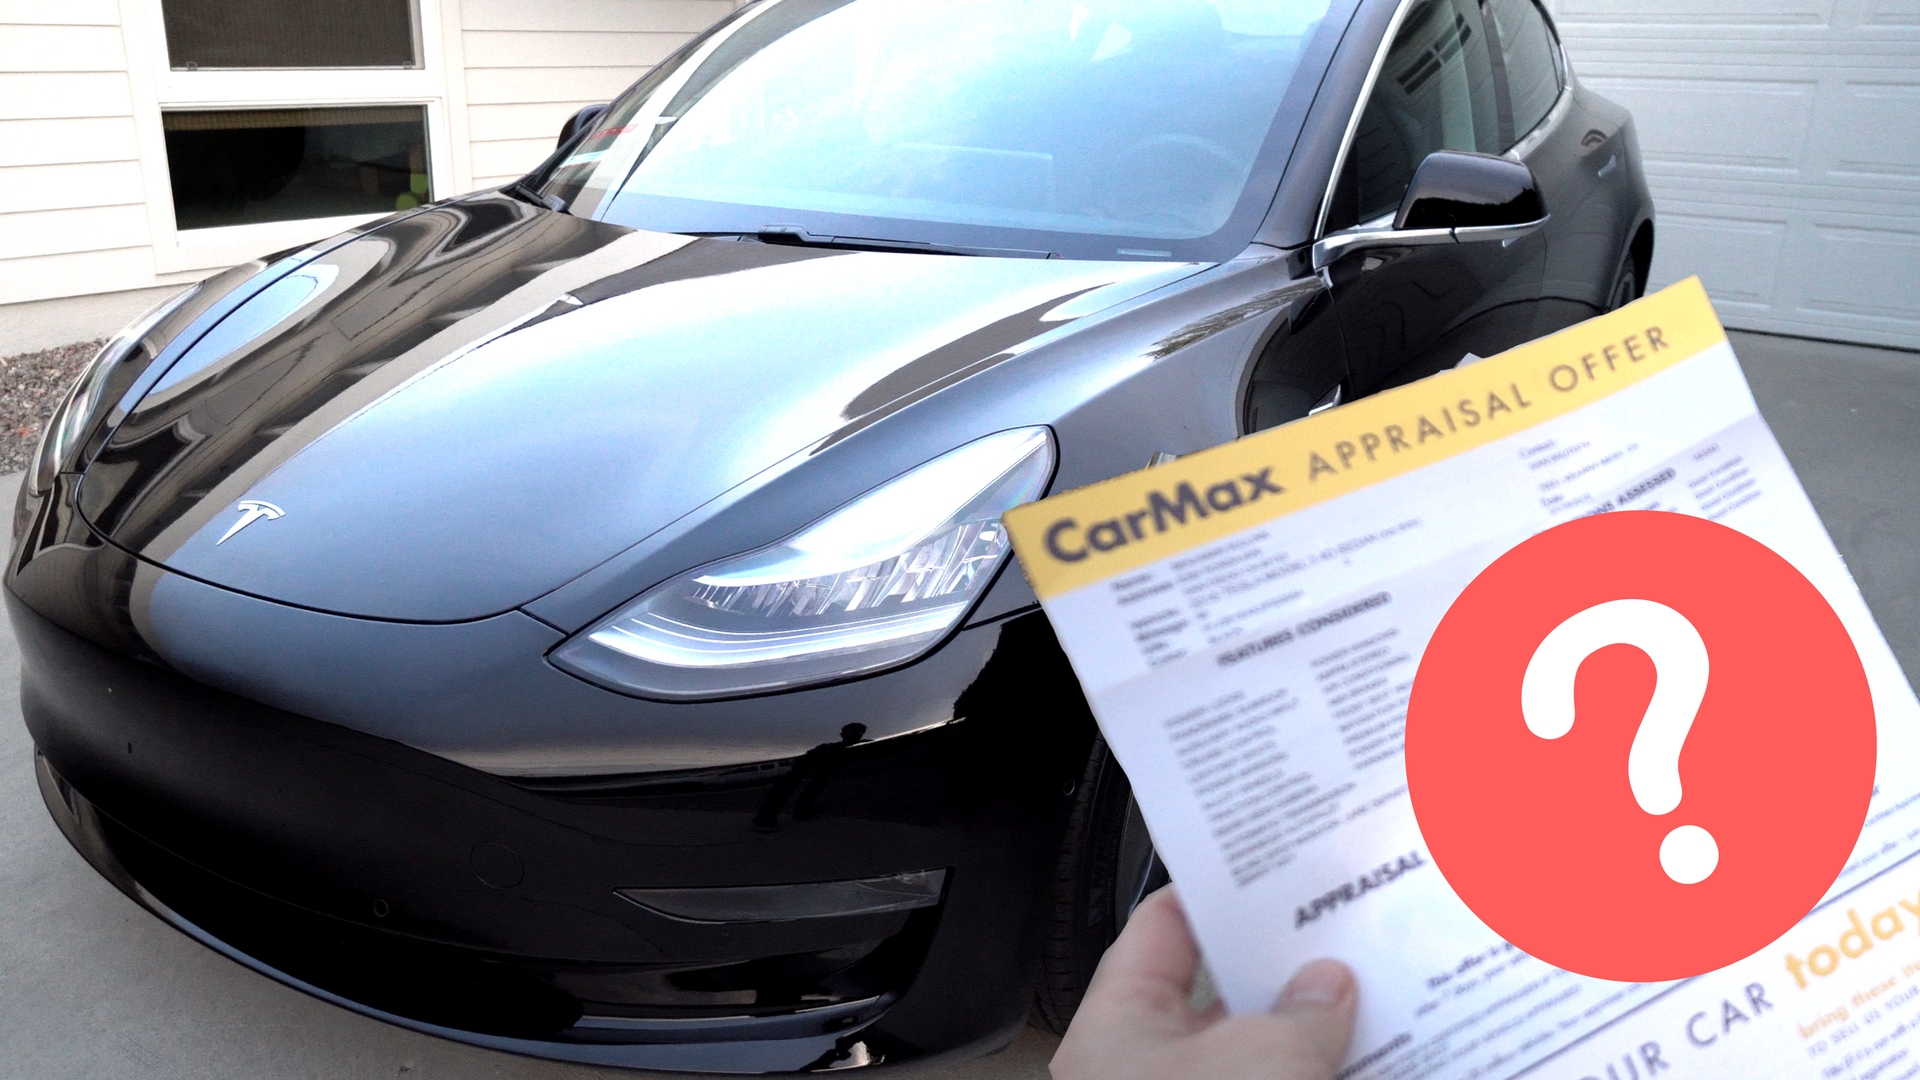 Taking My Tesla Model 3 To Carmax Guess How Much They Offered